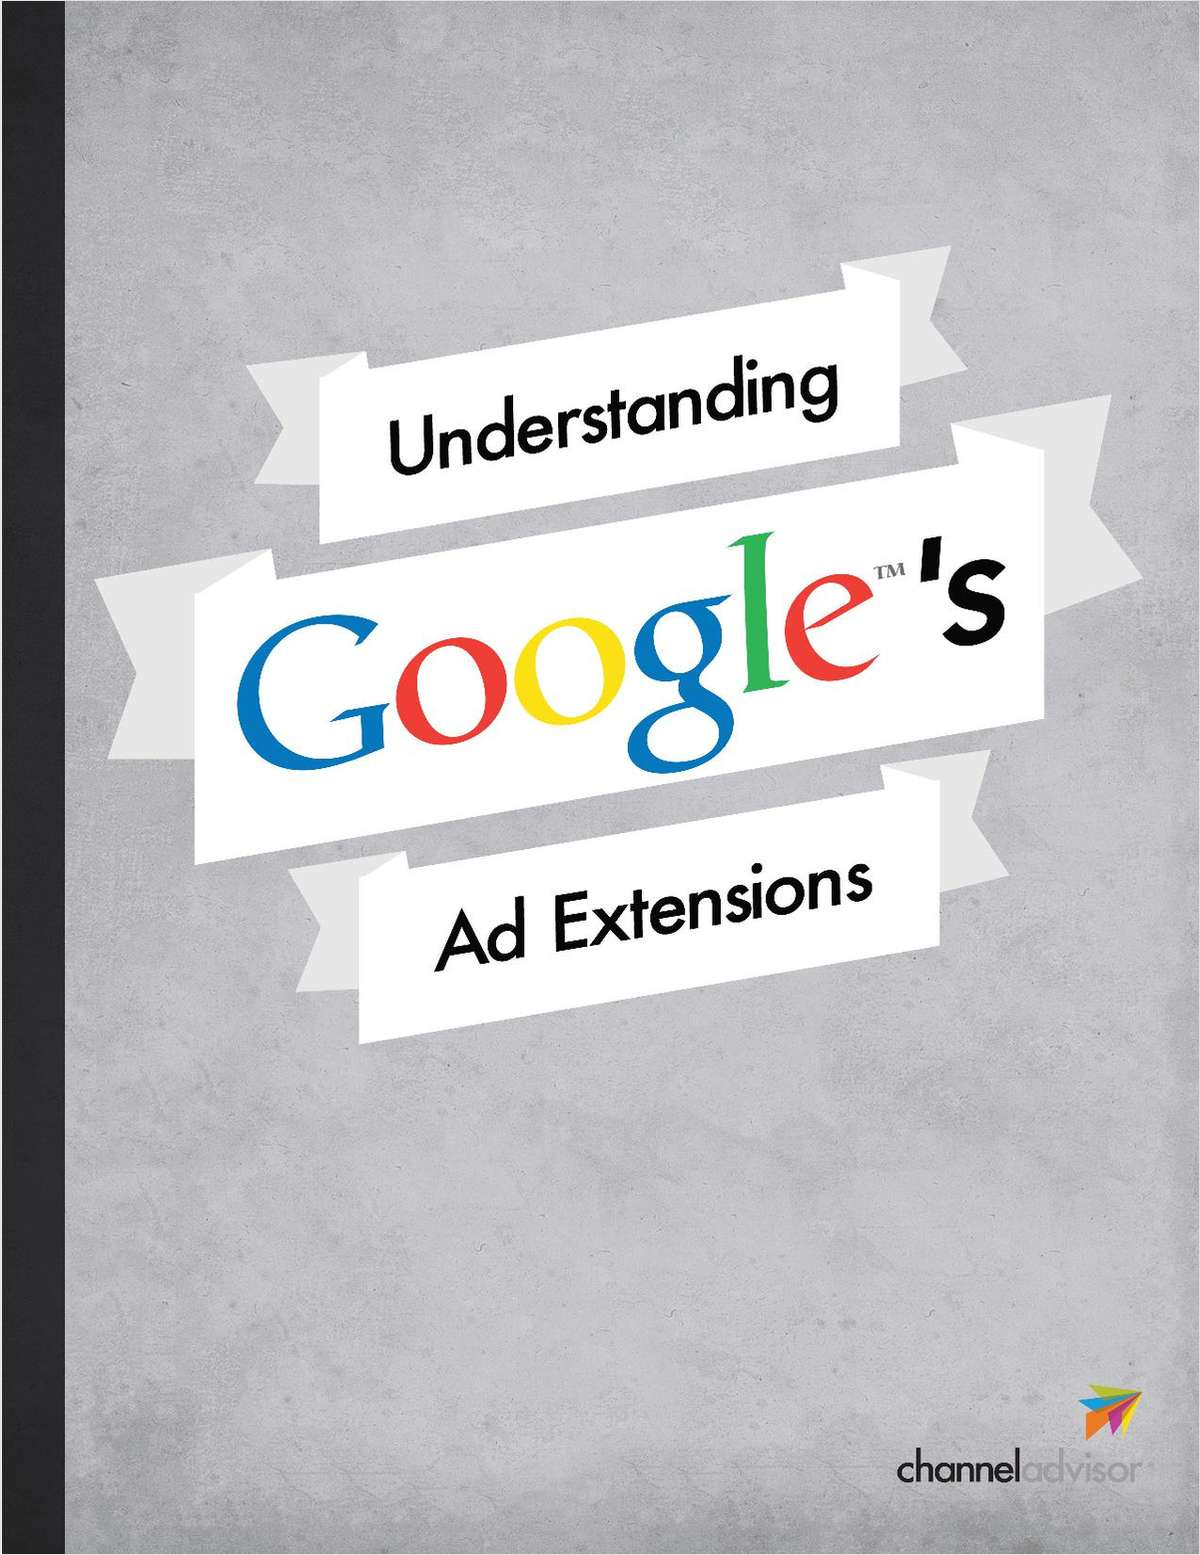 Master Google's Ad Extensions